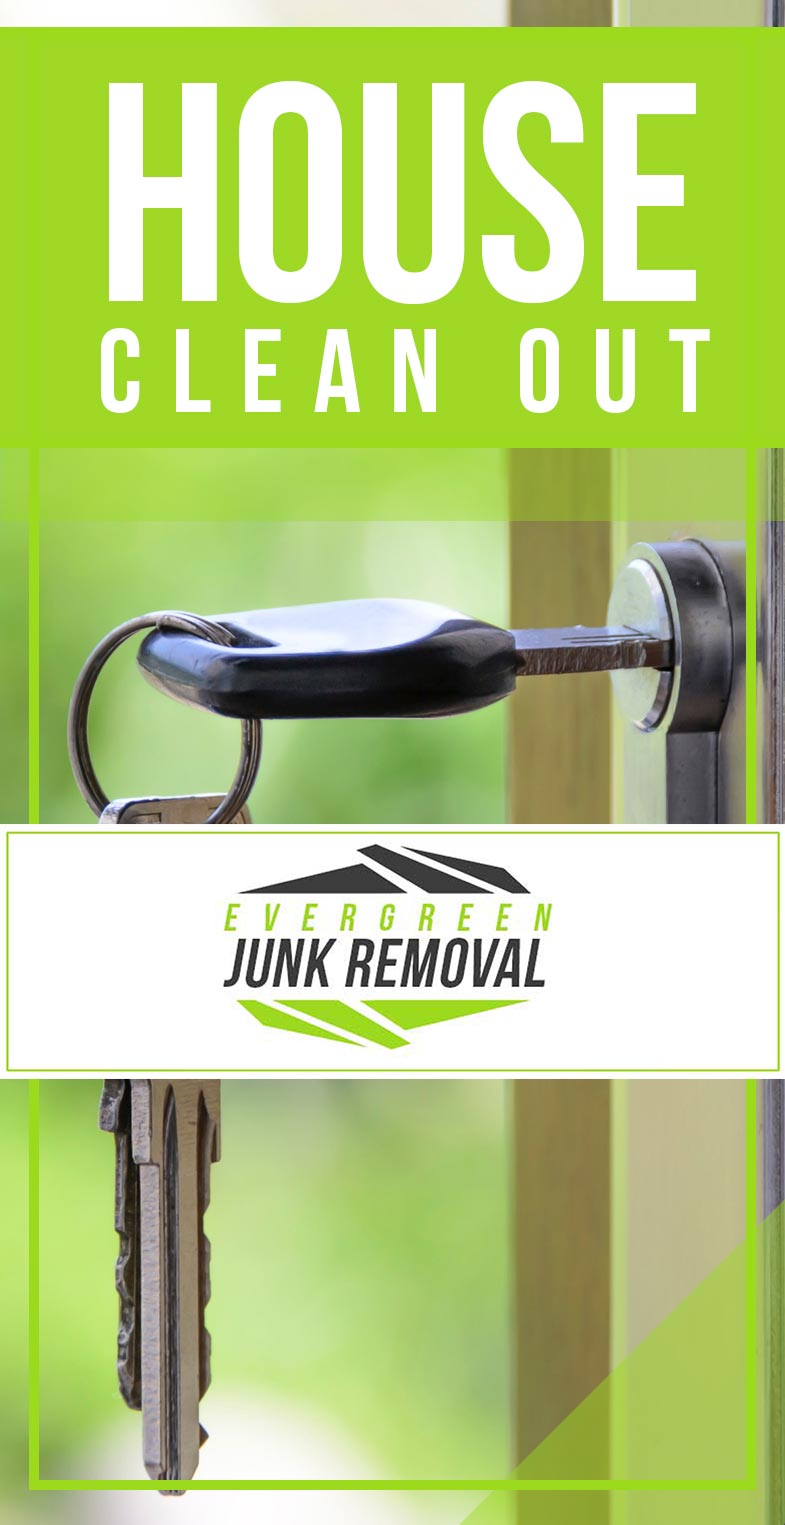 Junk Removal Loxahatchee Groves House Clean Out